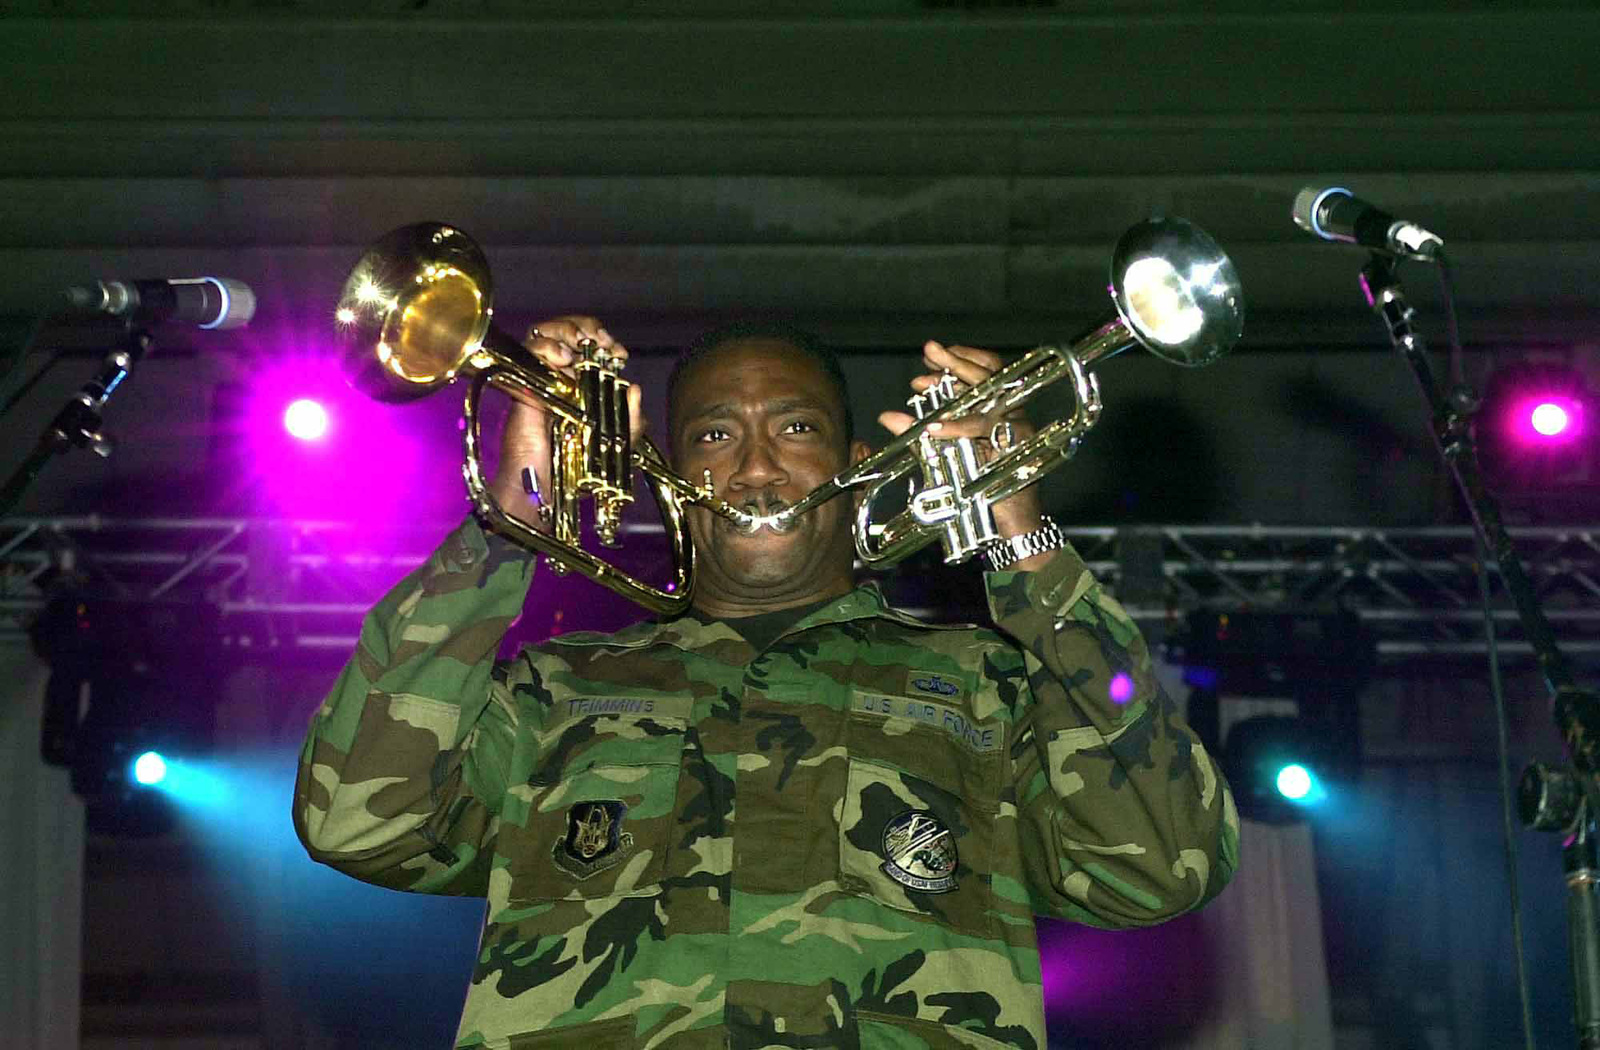 US Air Force (USAF) Technical Sergeant (TSGT) Kenneth Trimmins, Air Force Reserve Command Band, plays two horns at the same time during the Operations Season's Greetings concert held at RAF Mildenhall, United Kingdom